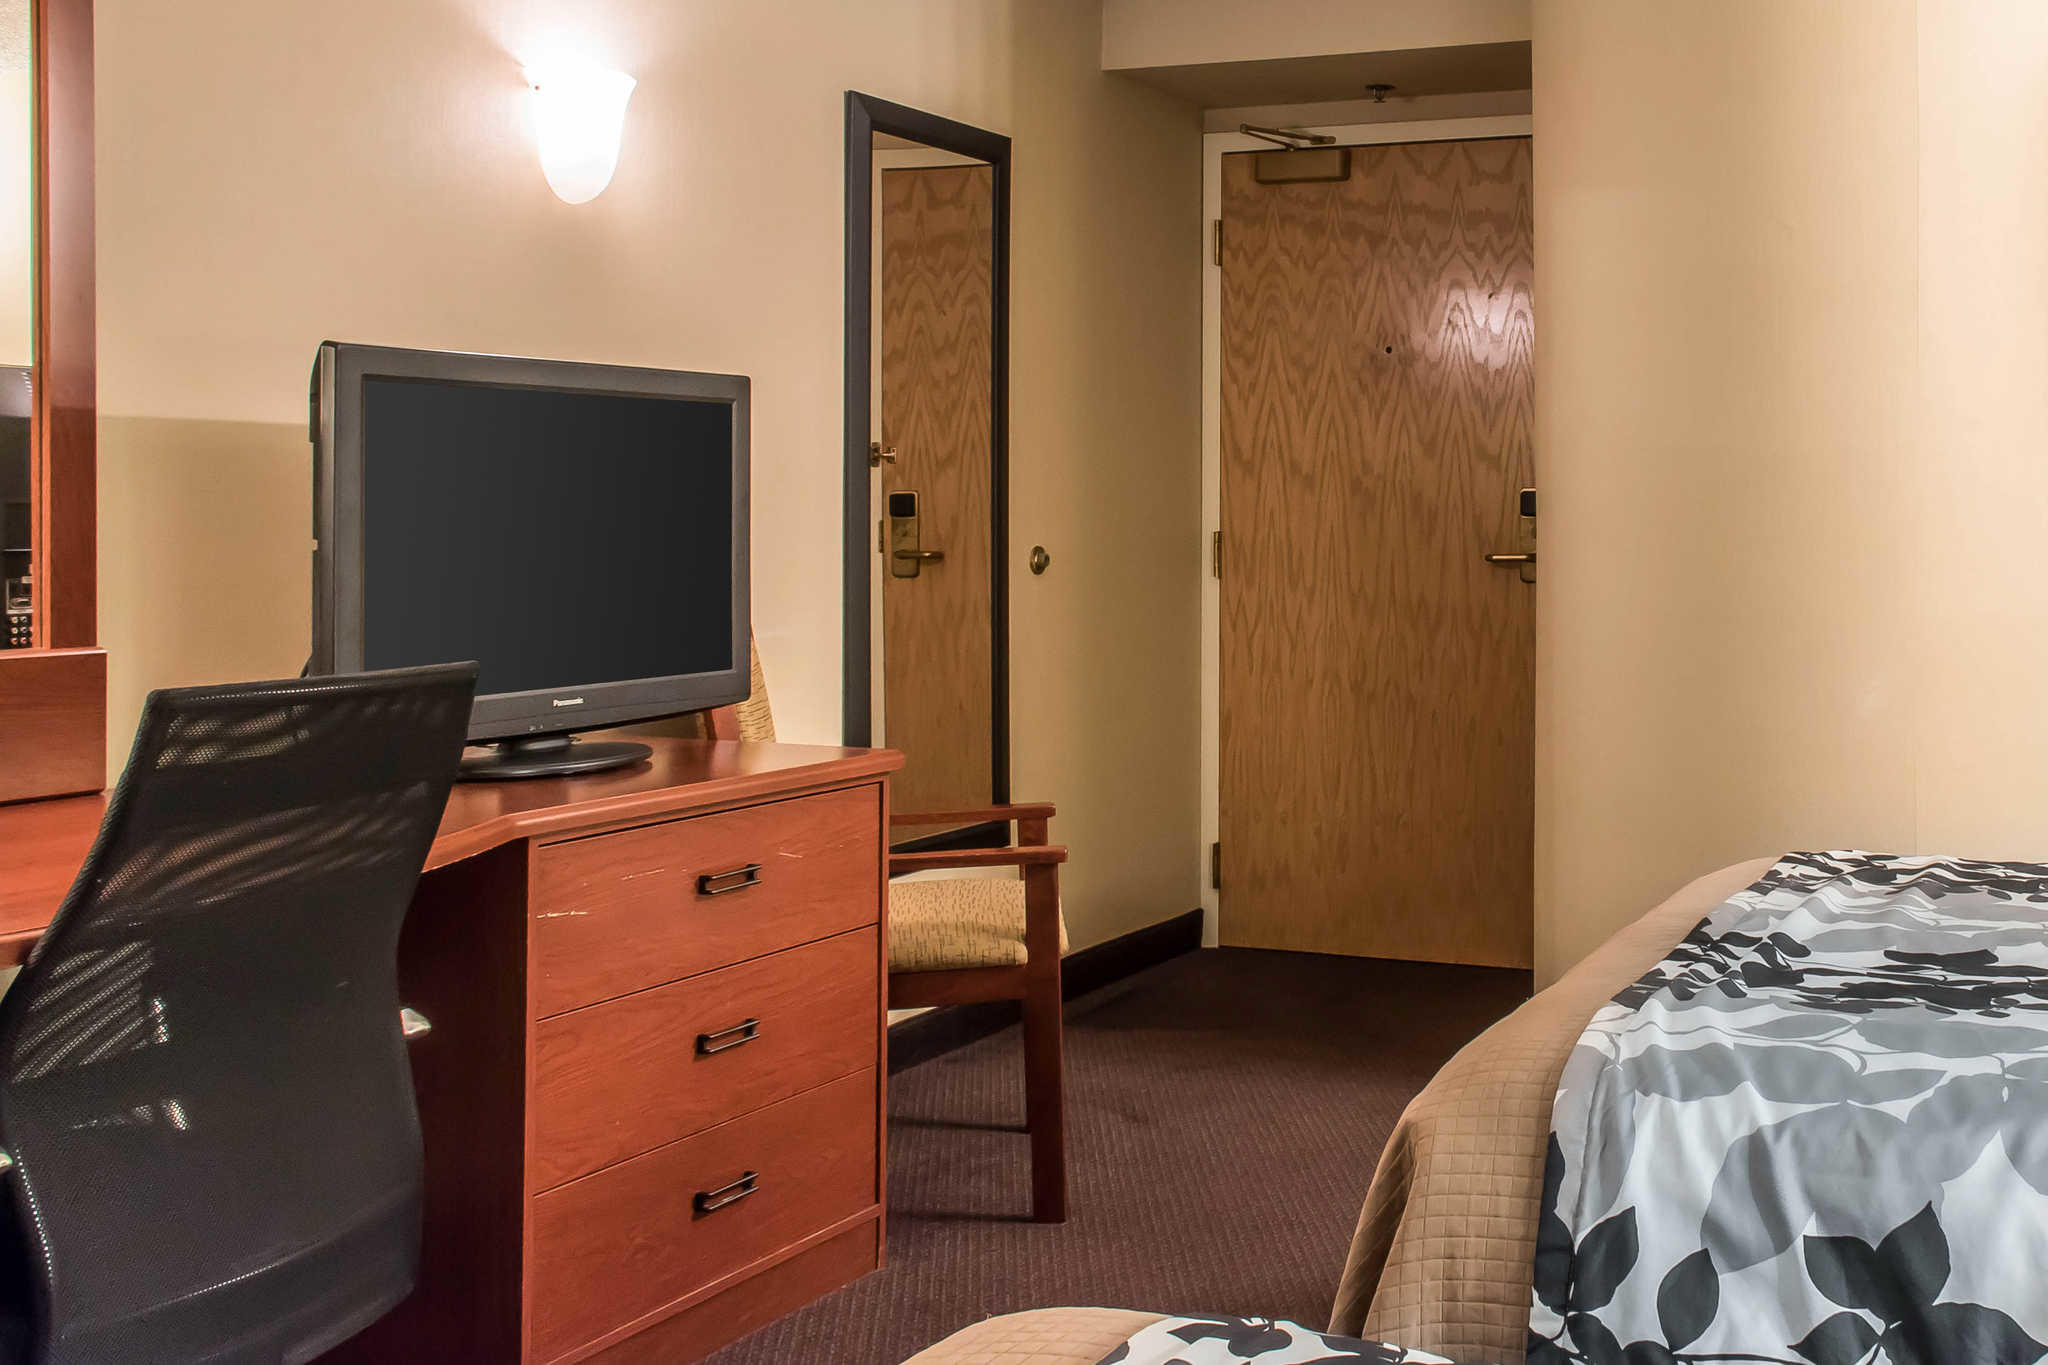 Sleep Inn & Suites of Lancaster County image 14